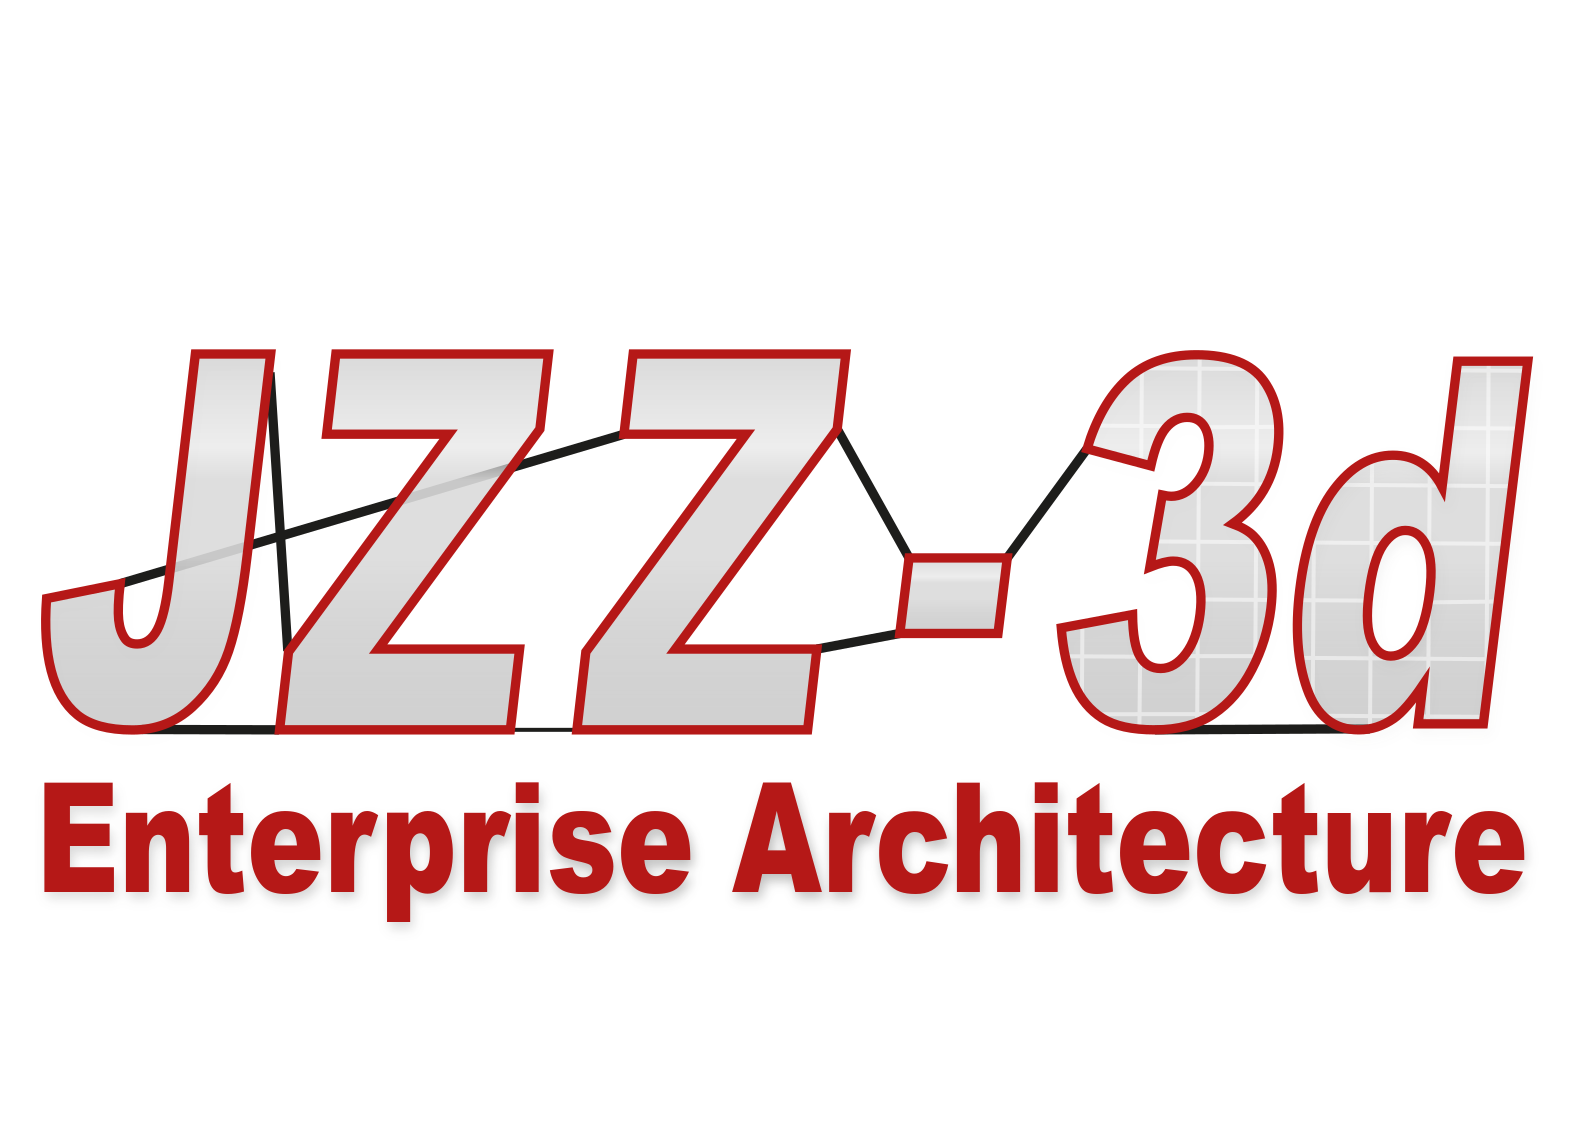 JZZ-3d Enterprise Architecture logo 2018